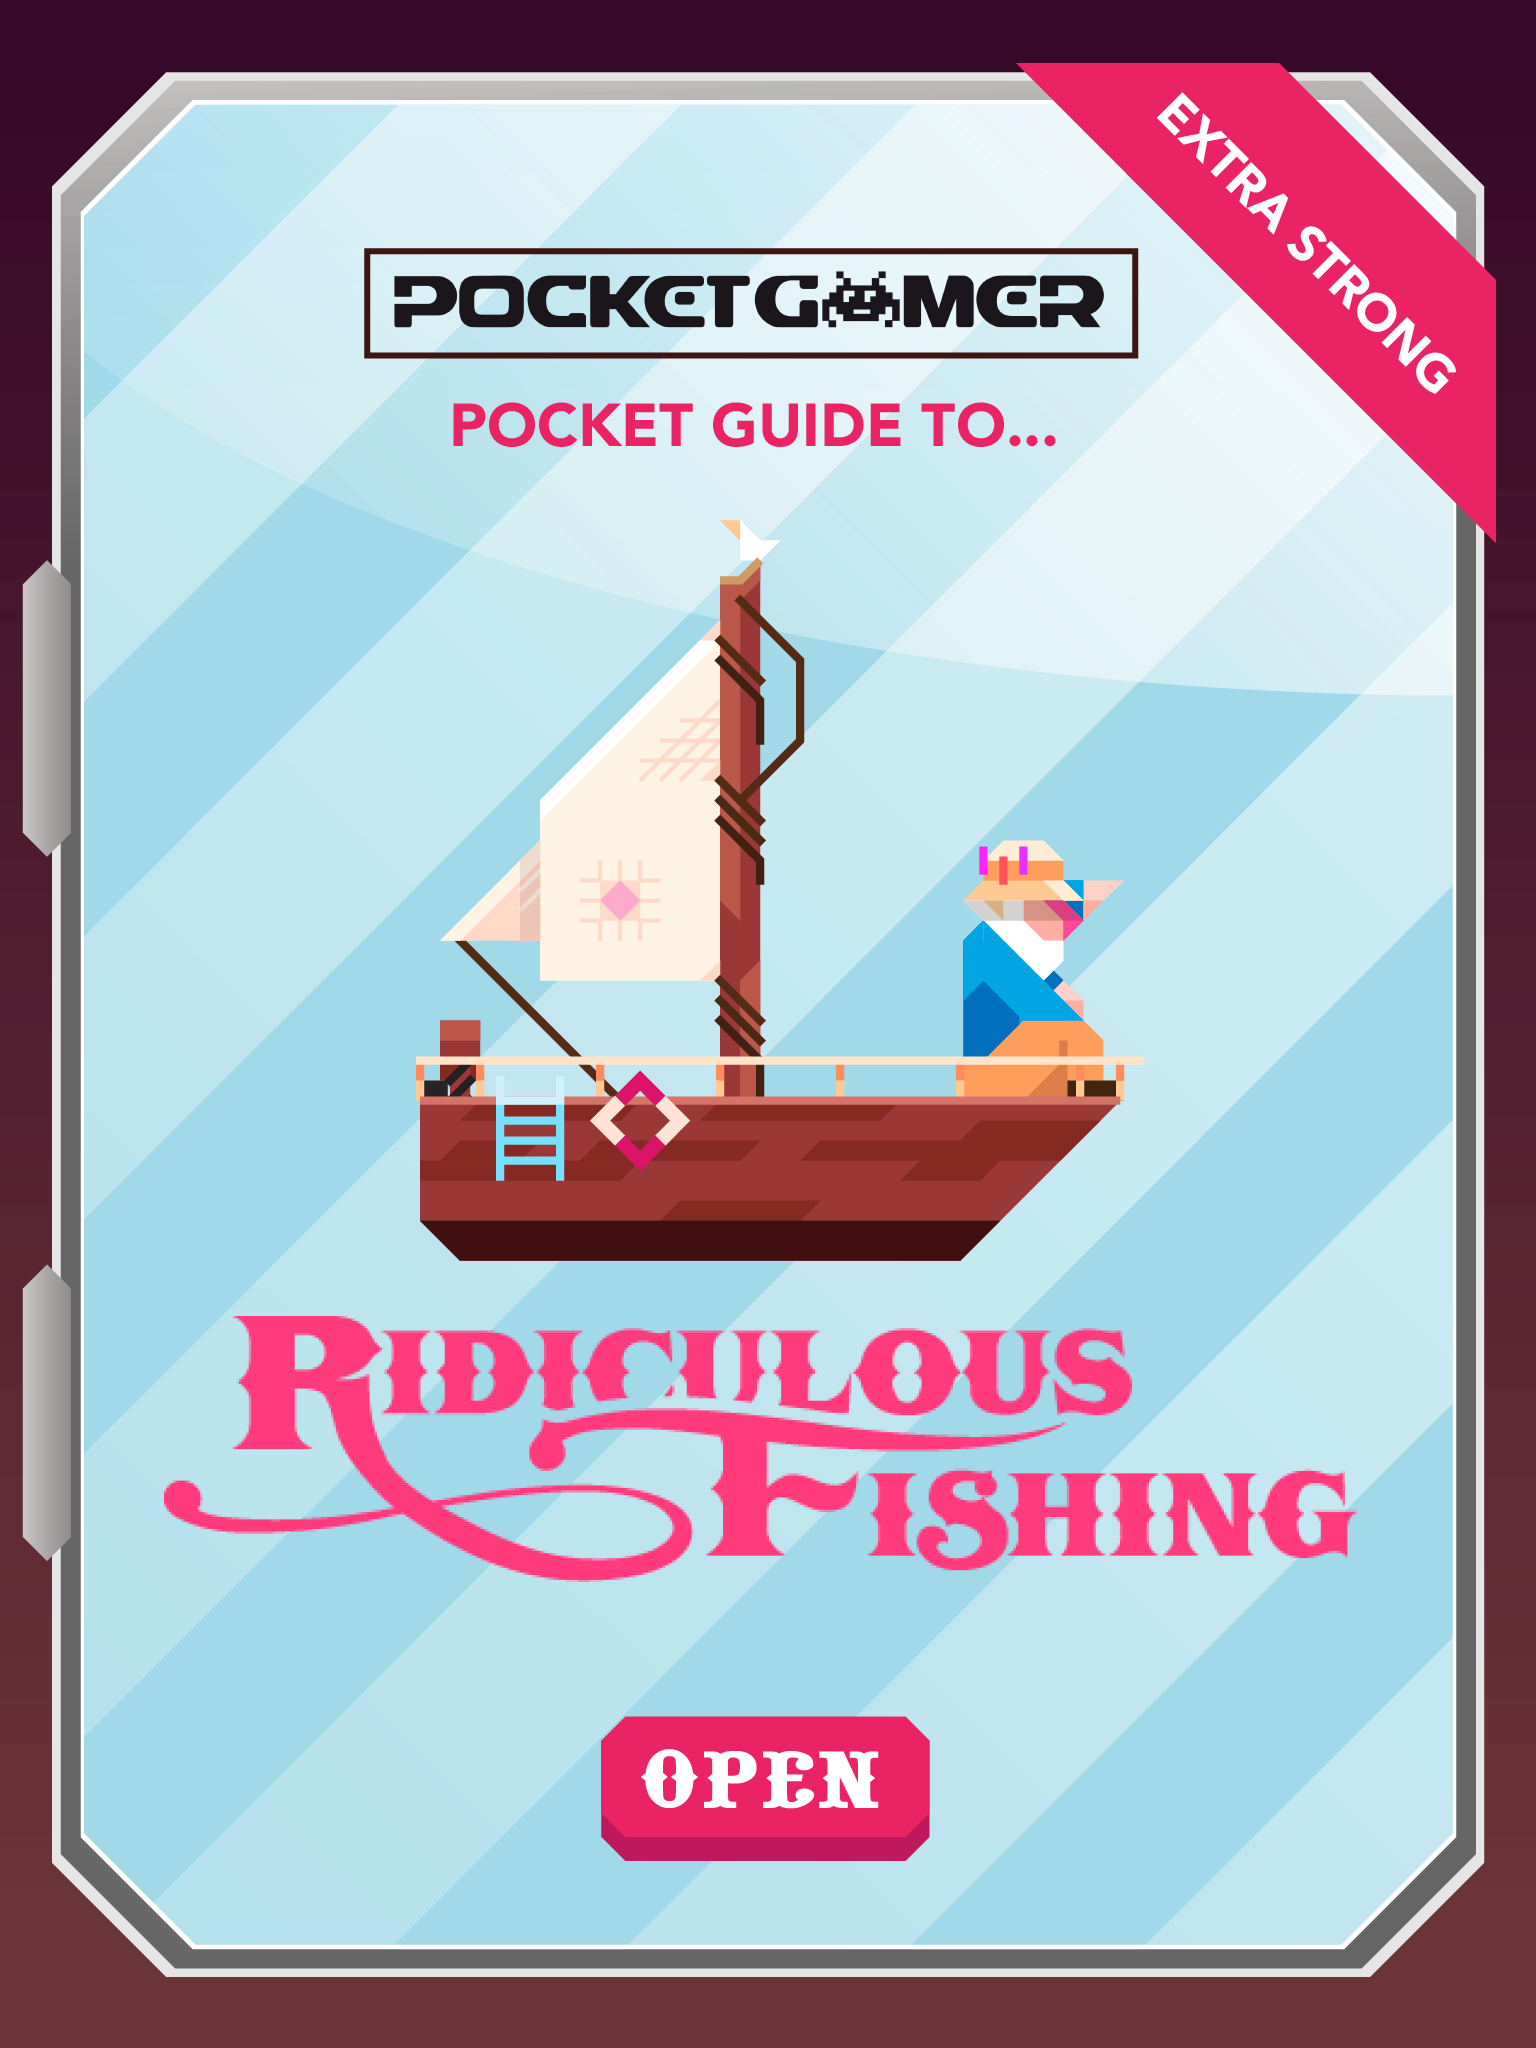 Pocket Gamer's Pocket Guide to Ridiculous Fishing is now live